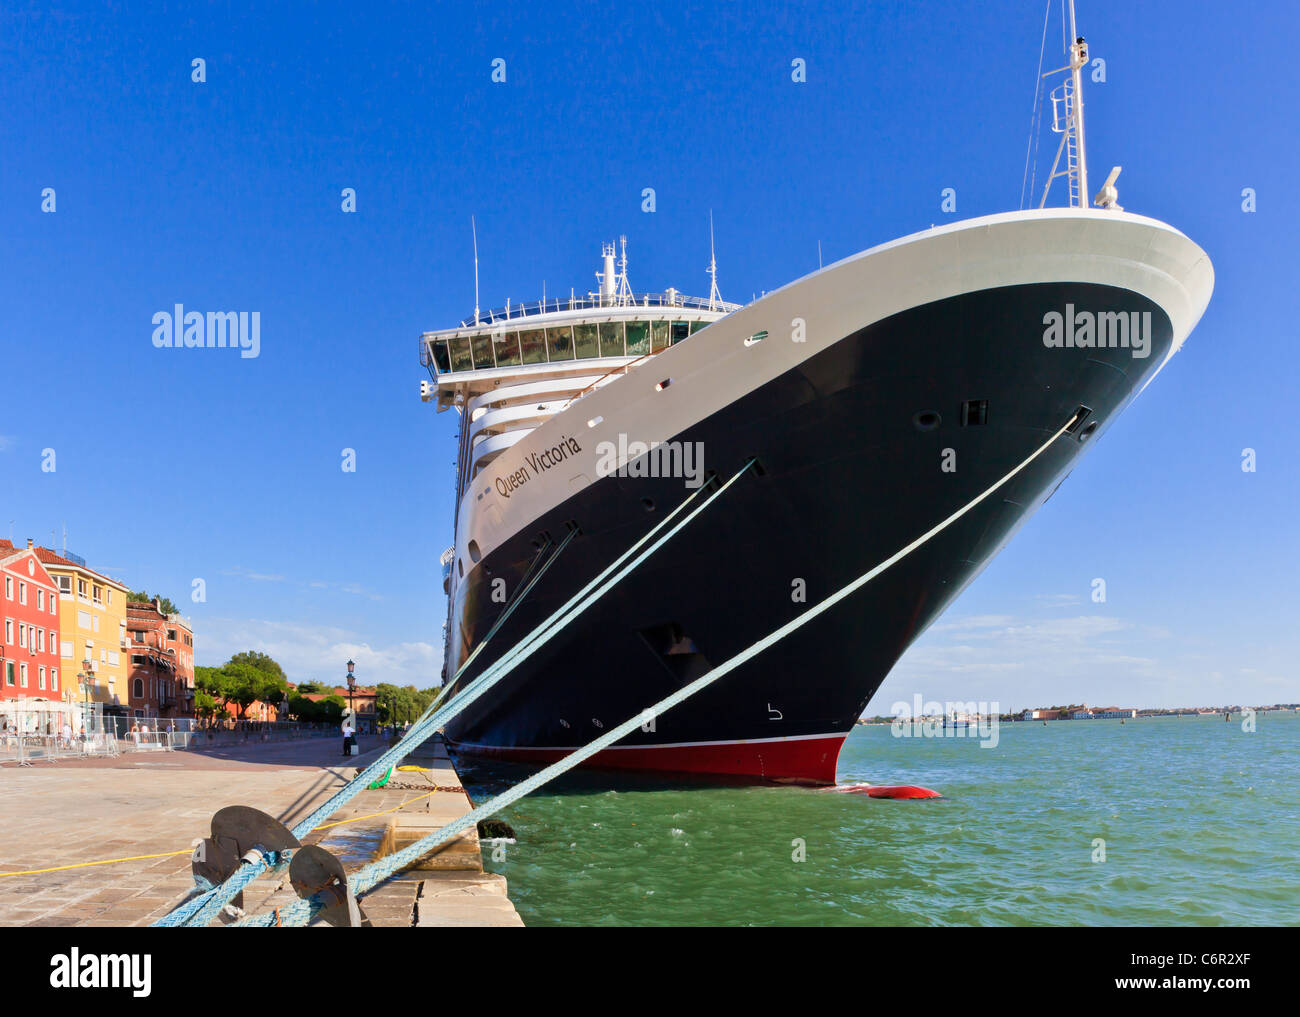 Cruise liner Queen Victoria at Venice harbour, Veneto, Italy - Stock Image